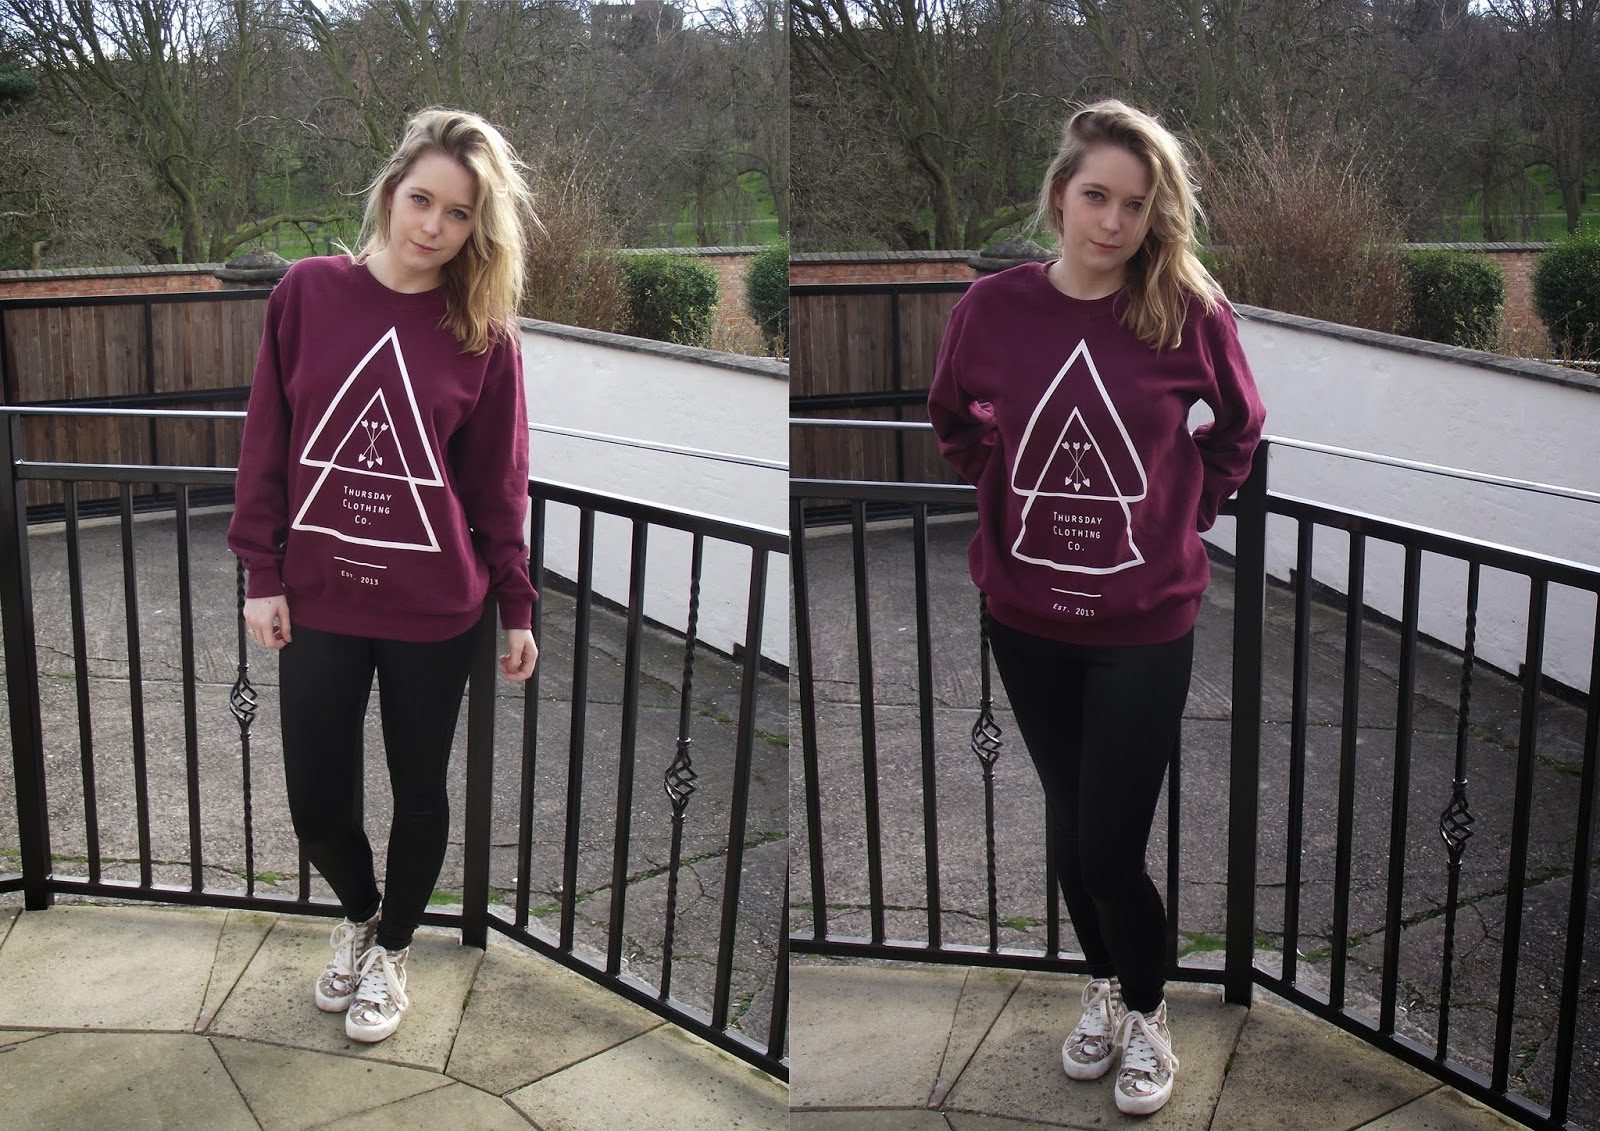 Lrsmth Fashion Thursday Clothing Sweatshirt feat Topshop